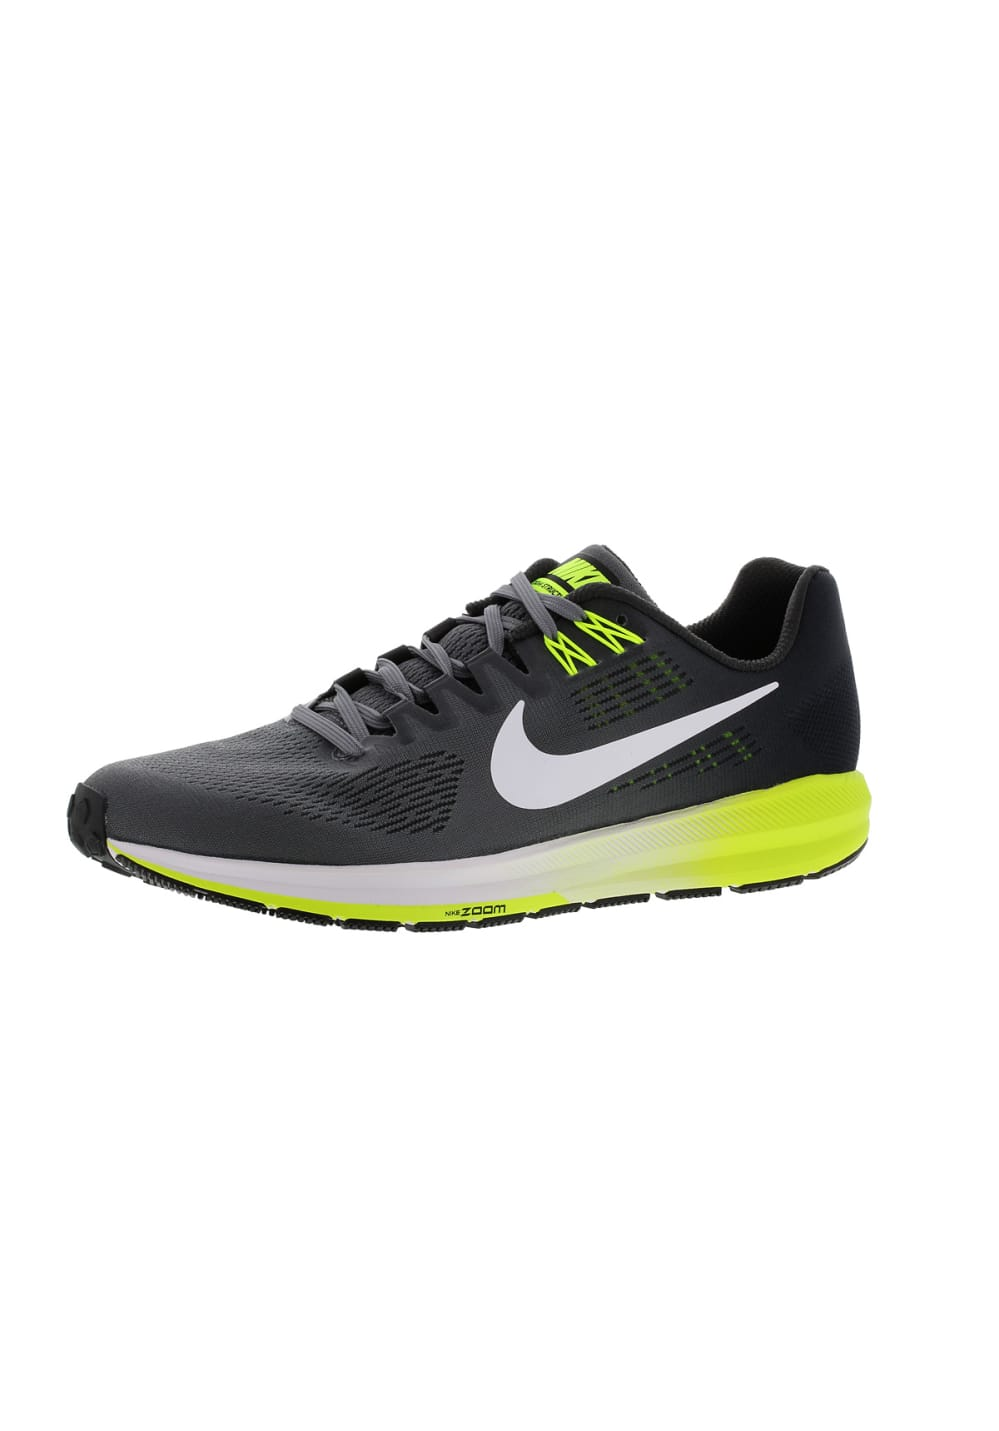 innovative design 4c37e 5ae33 Nike Air Zoom Structure 21 - Running shoes for Men - Grey